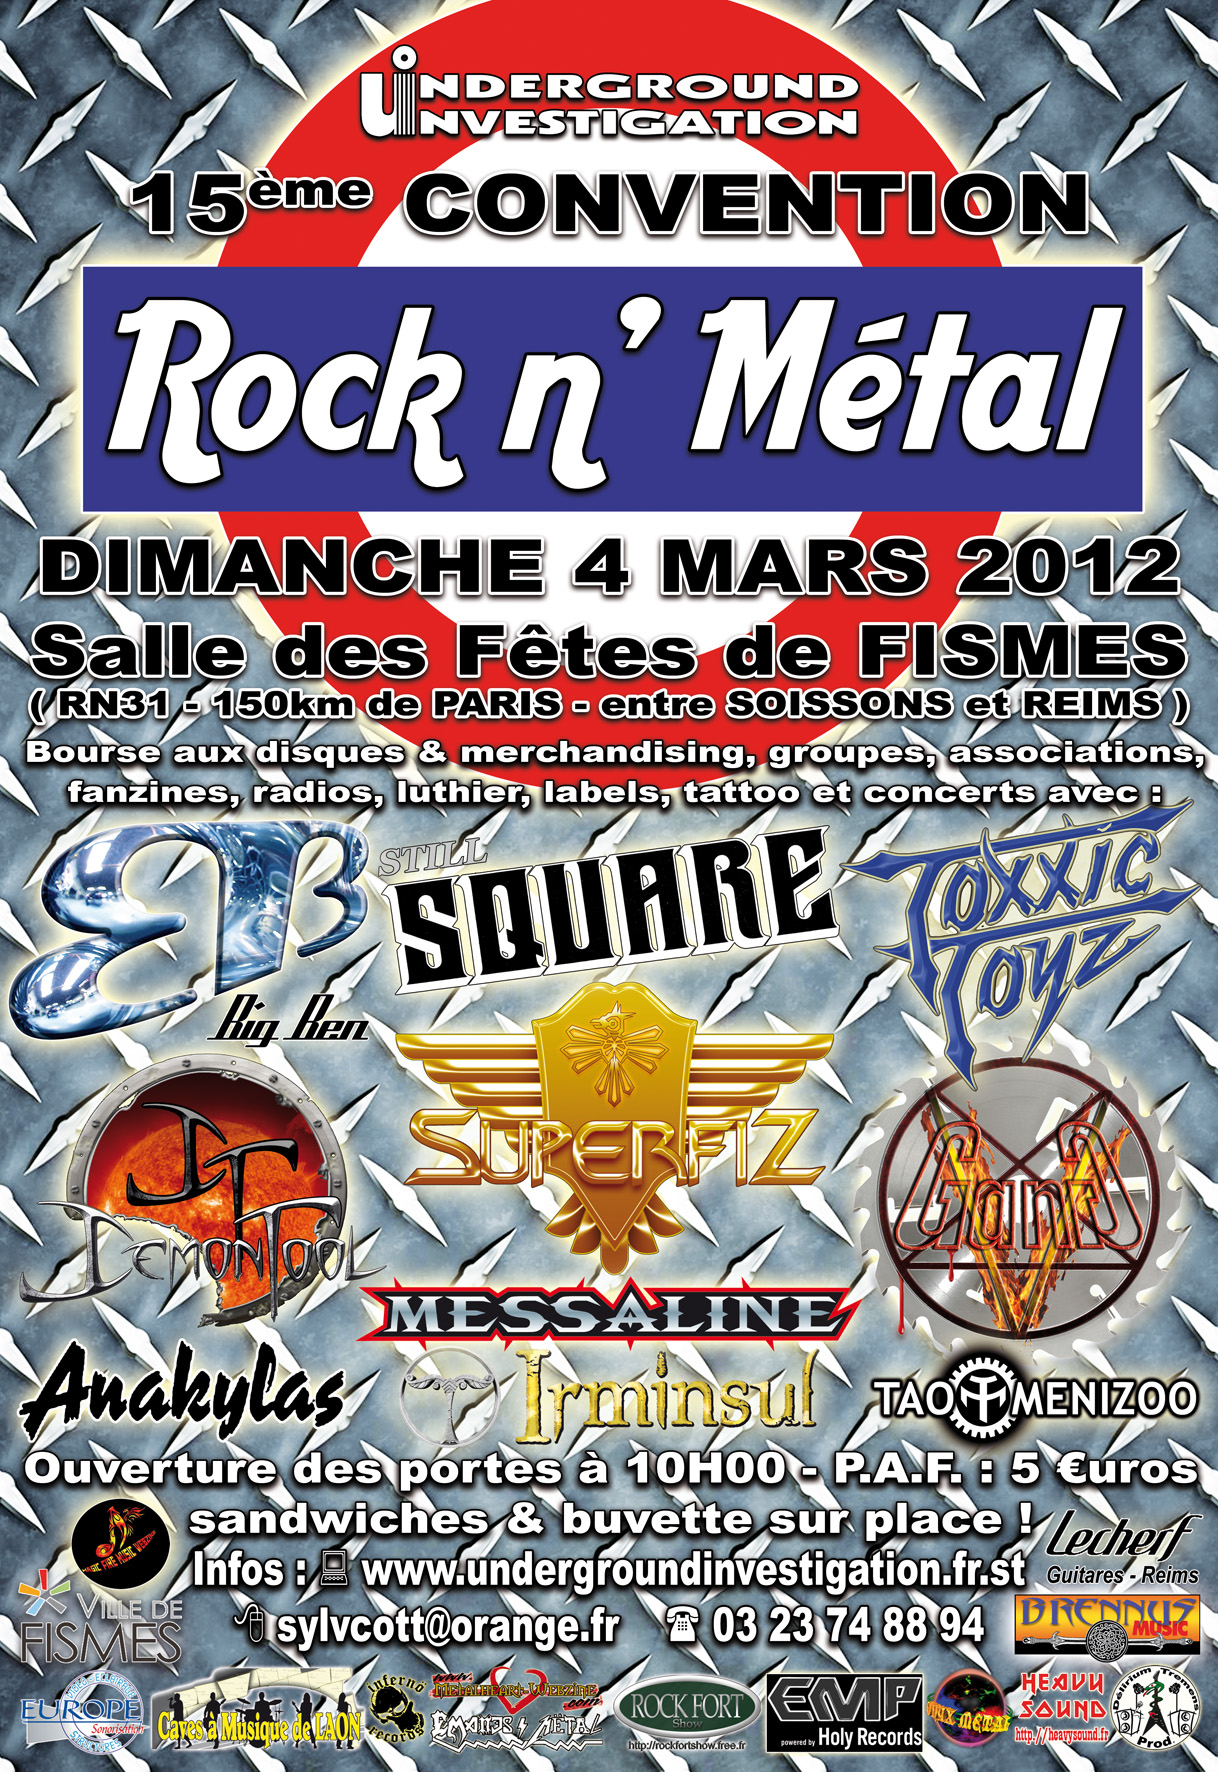 Convention Rock n' Metal 2012 (1)